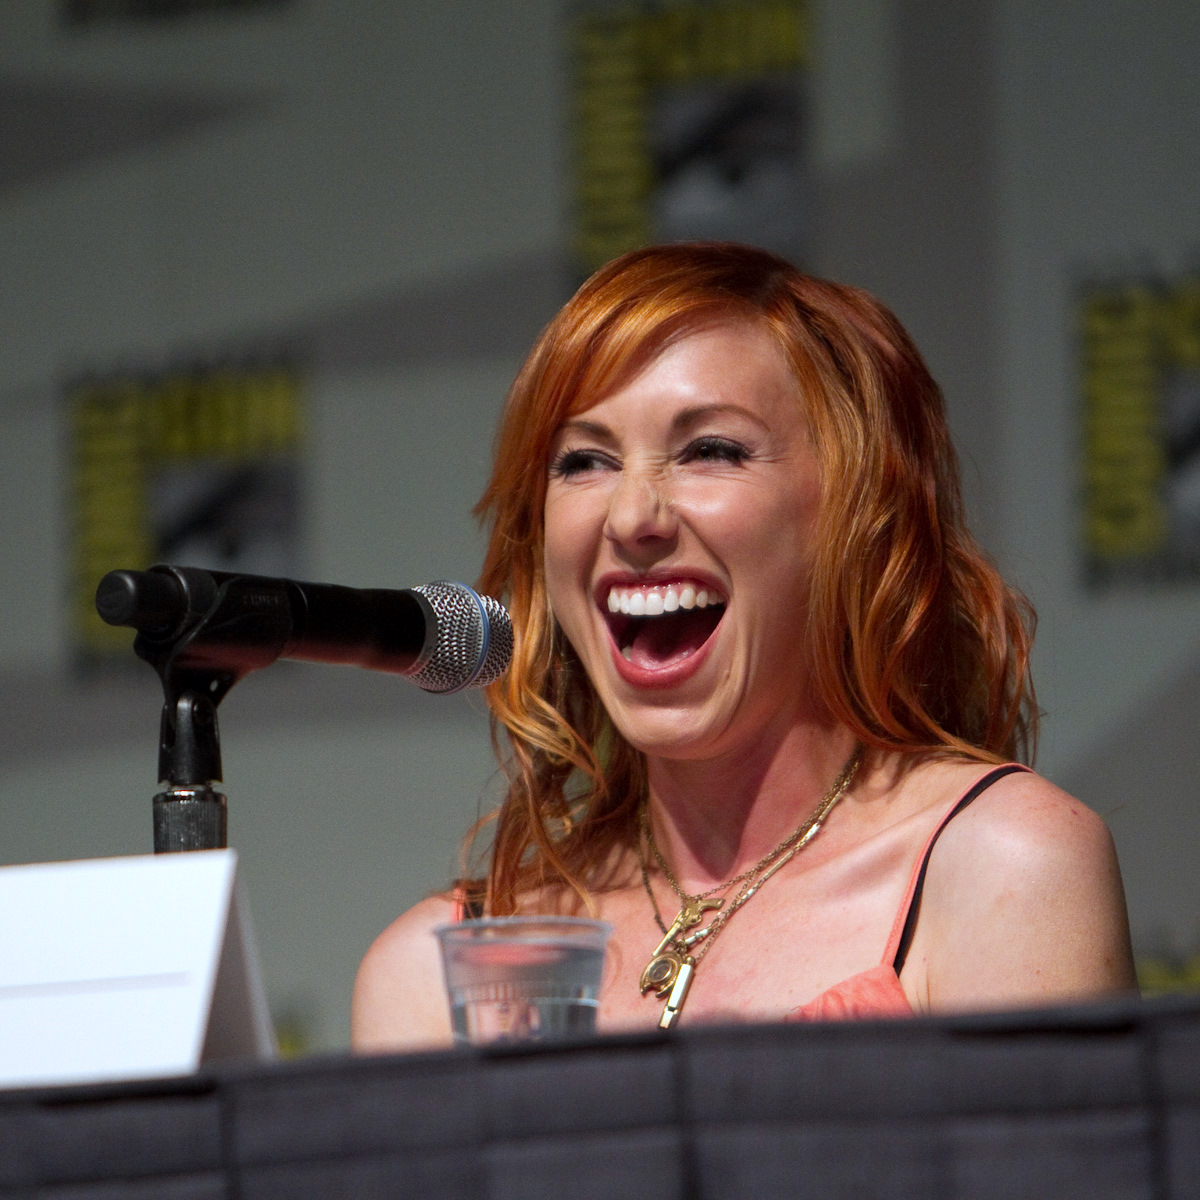 Kari Byron   Kari Byron Photo  29679957    Fanpop fanclubs